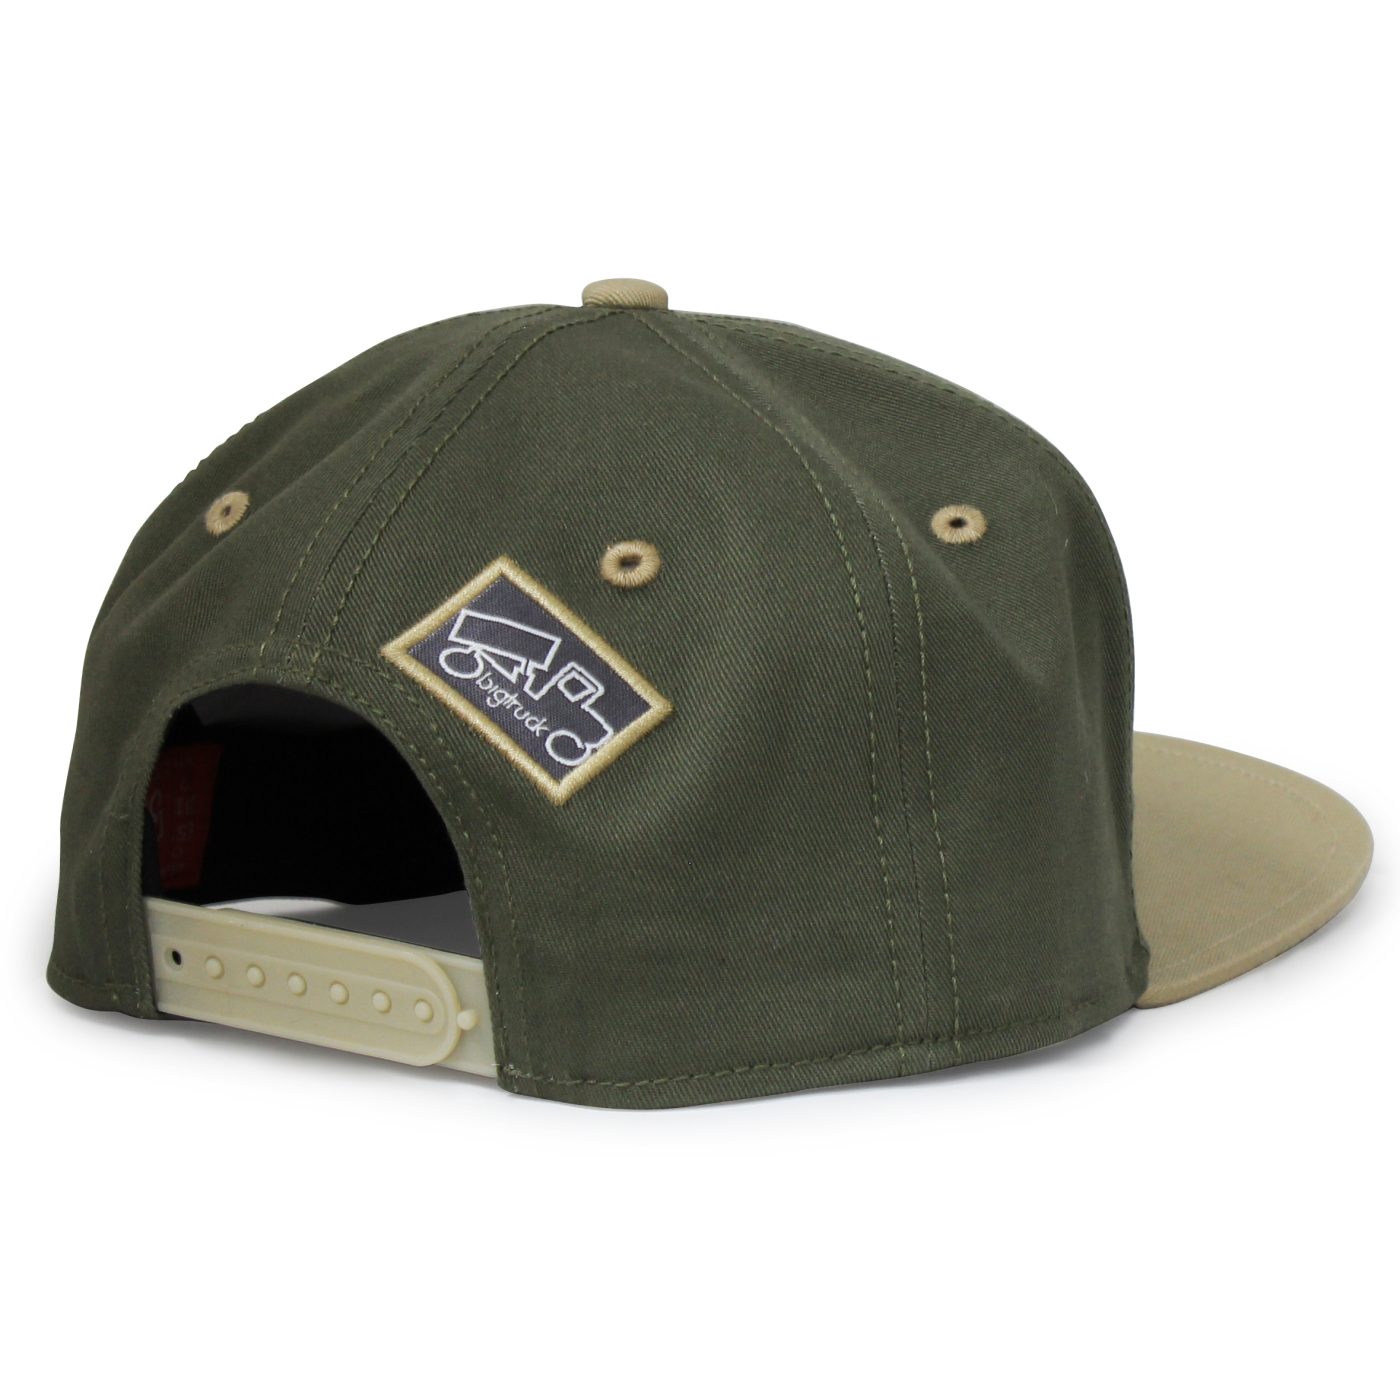 Pro Gline Republic Olive Green - Back